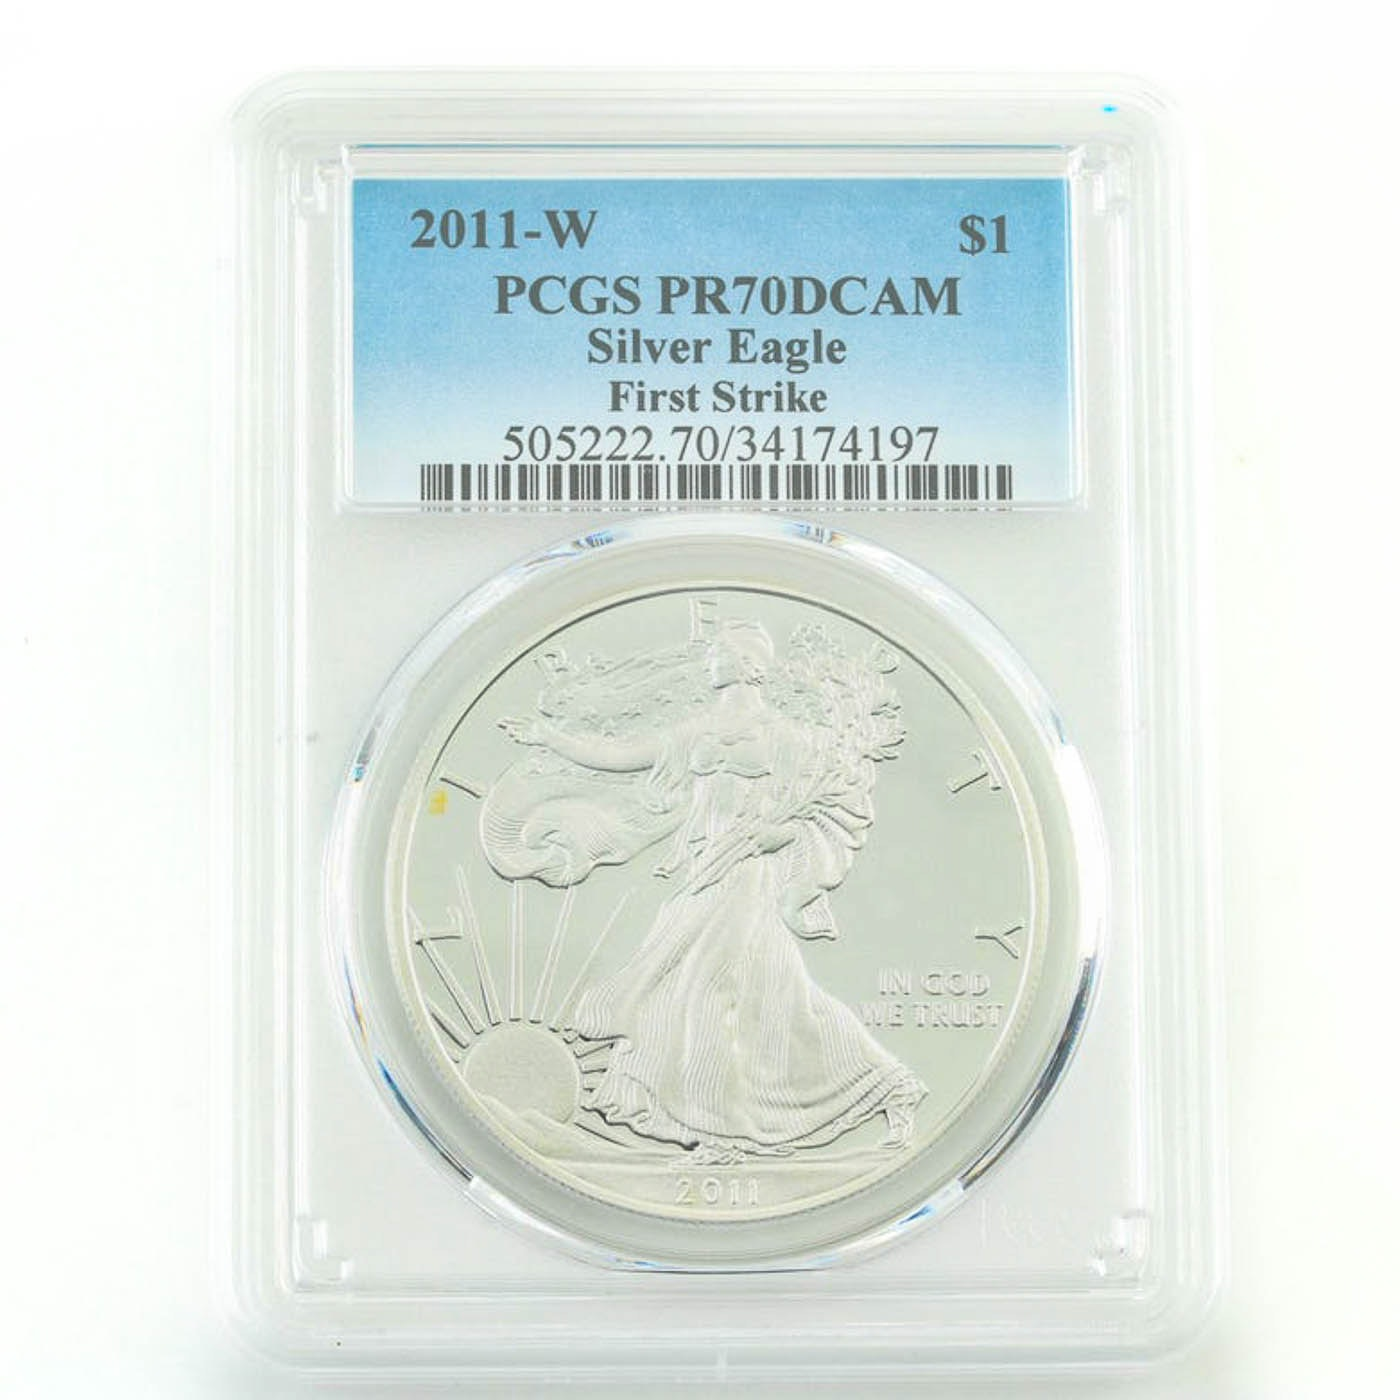 PCGS Graded PR70DCAM 2011-W Silver Eagle First Strike Bullion Coin